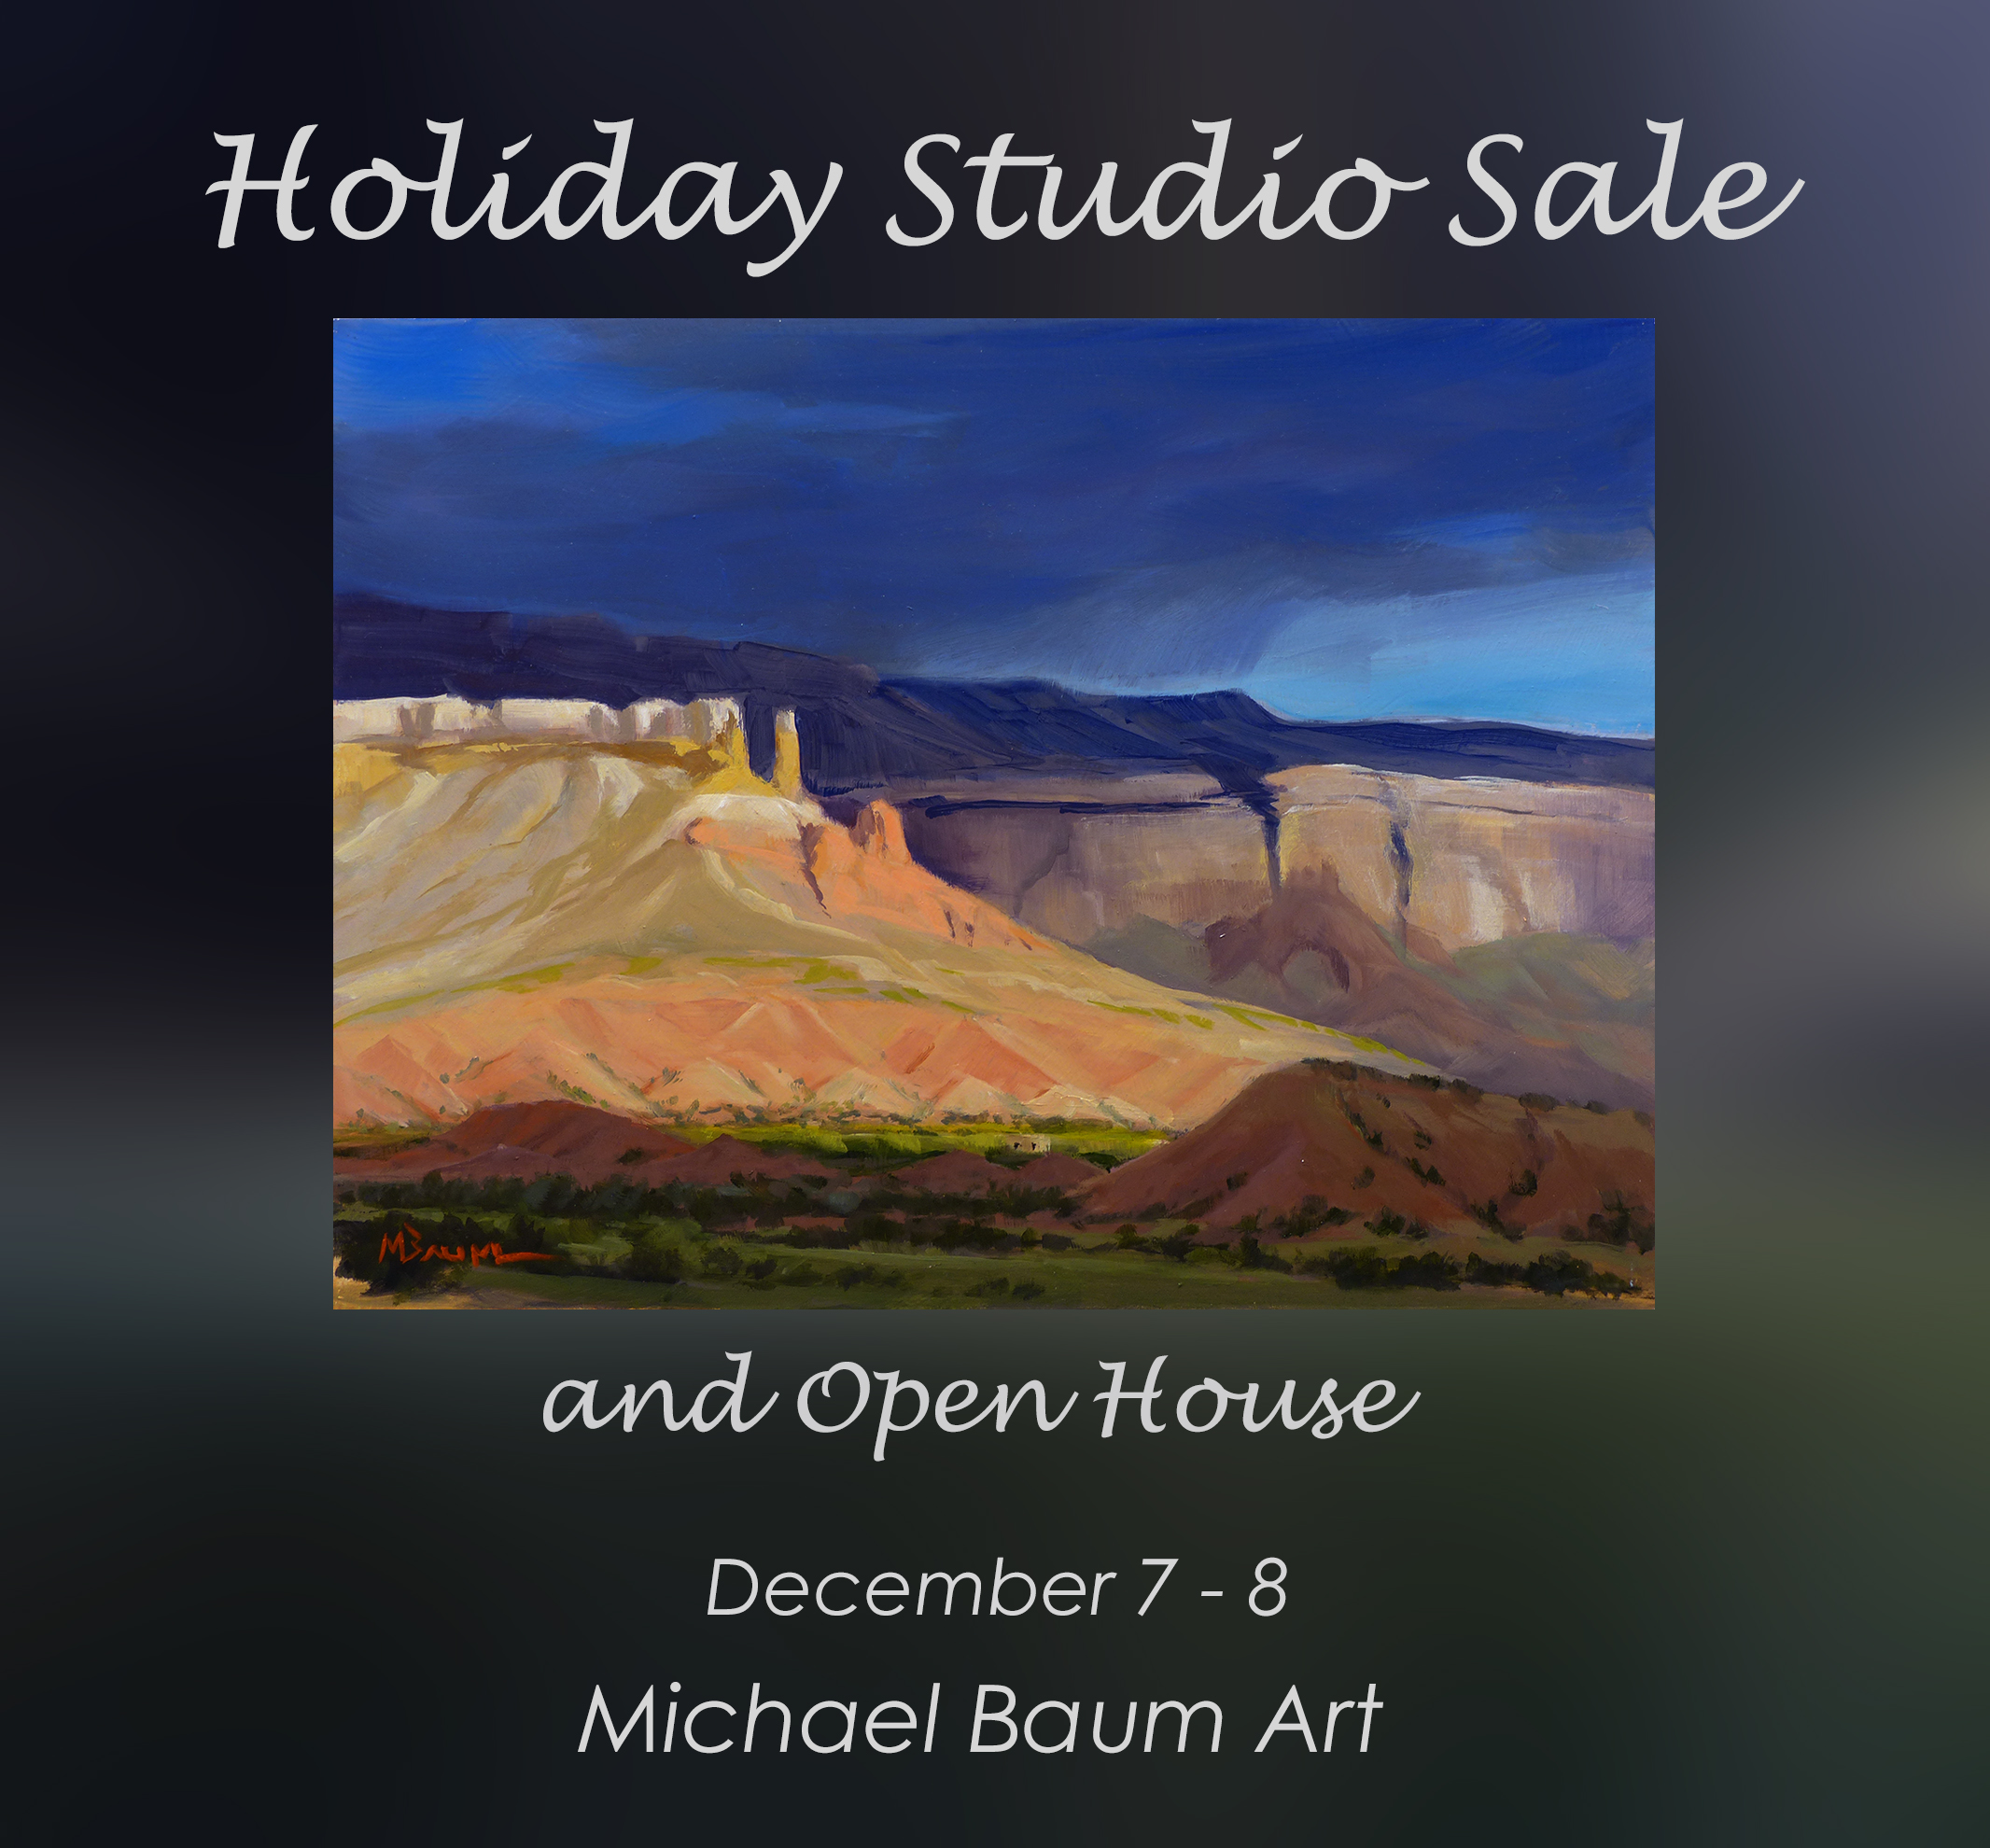 Michael Baum Art Holiday Studio Sale and Open House